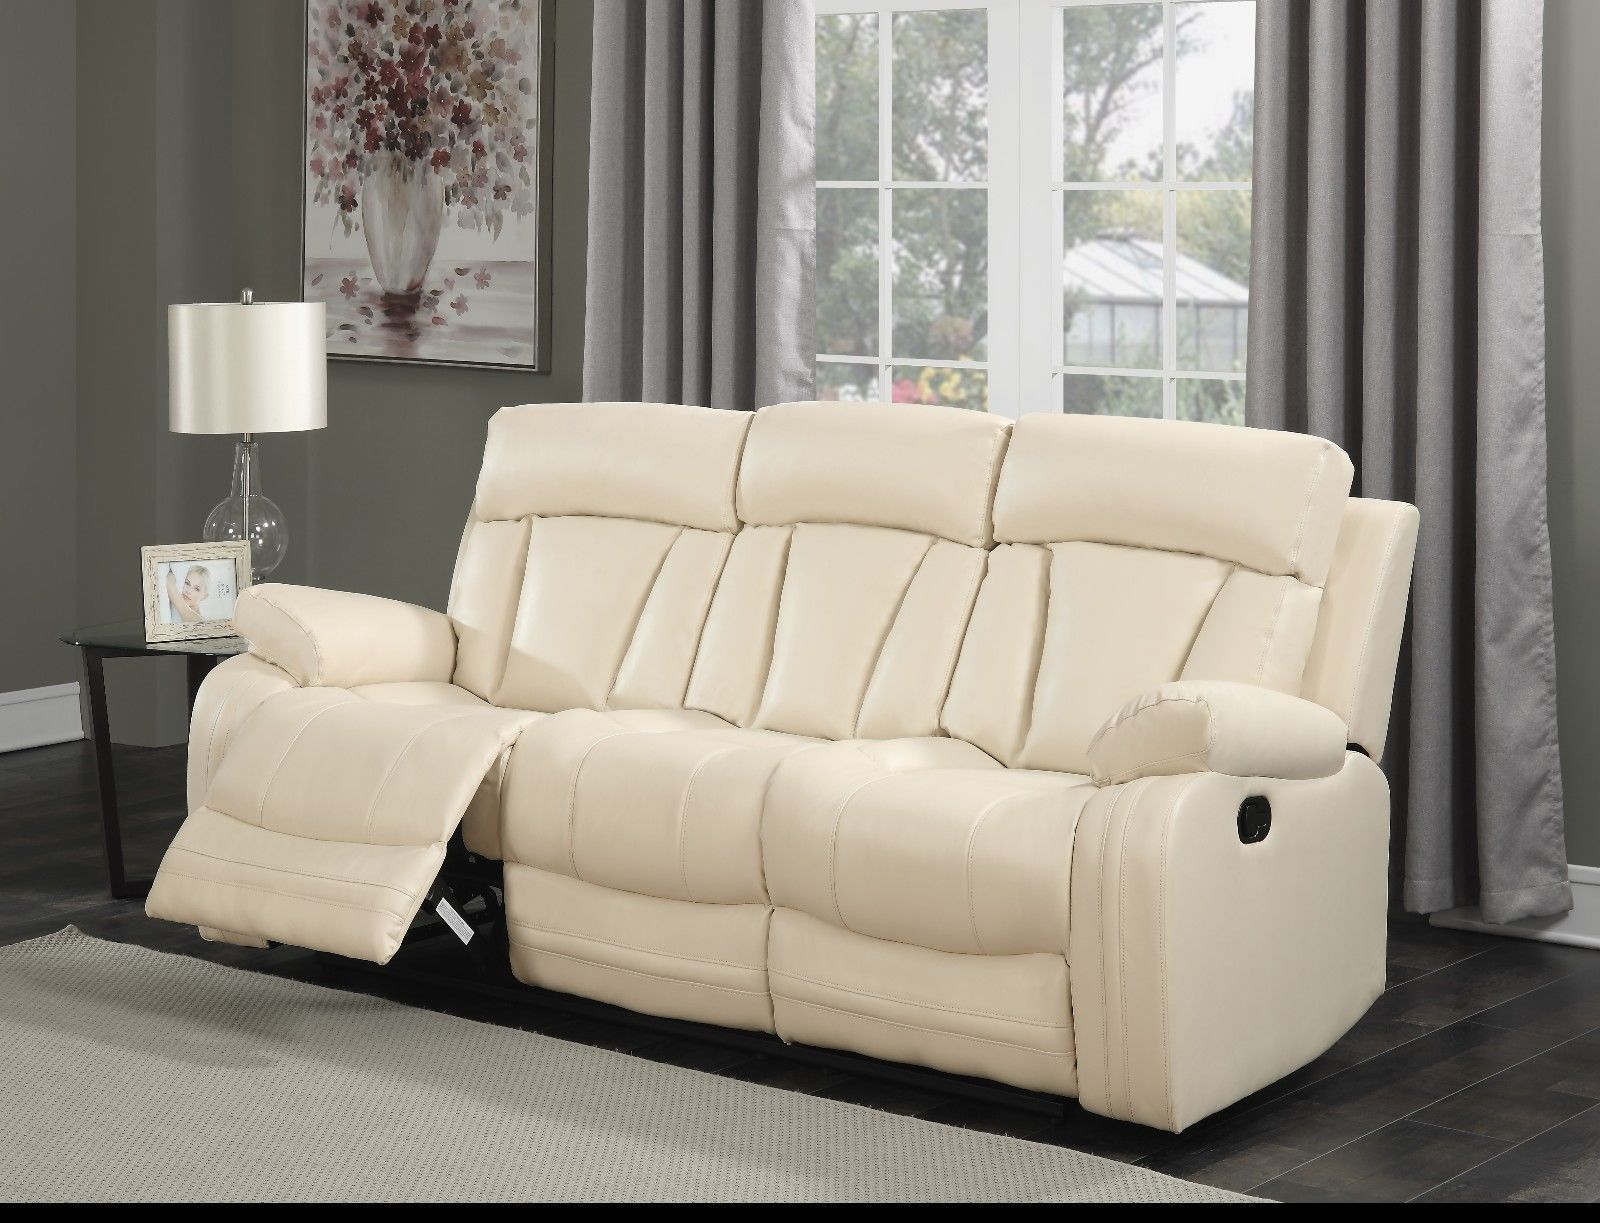 Meridian 645 Avery Living Room Sofa in Beige Bonded Leather Contemporary Style